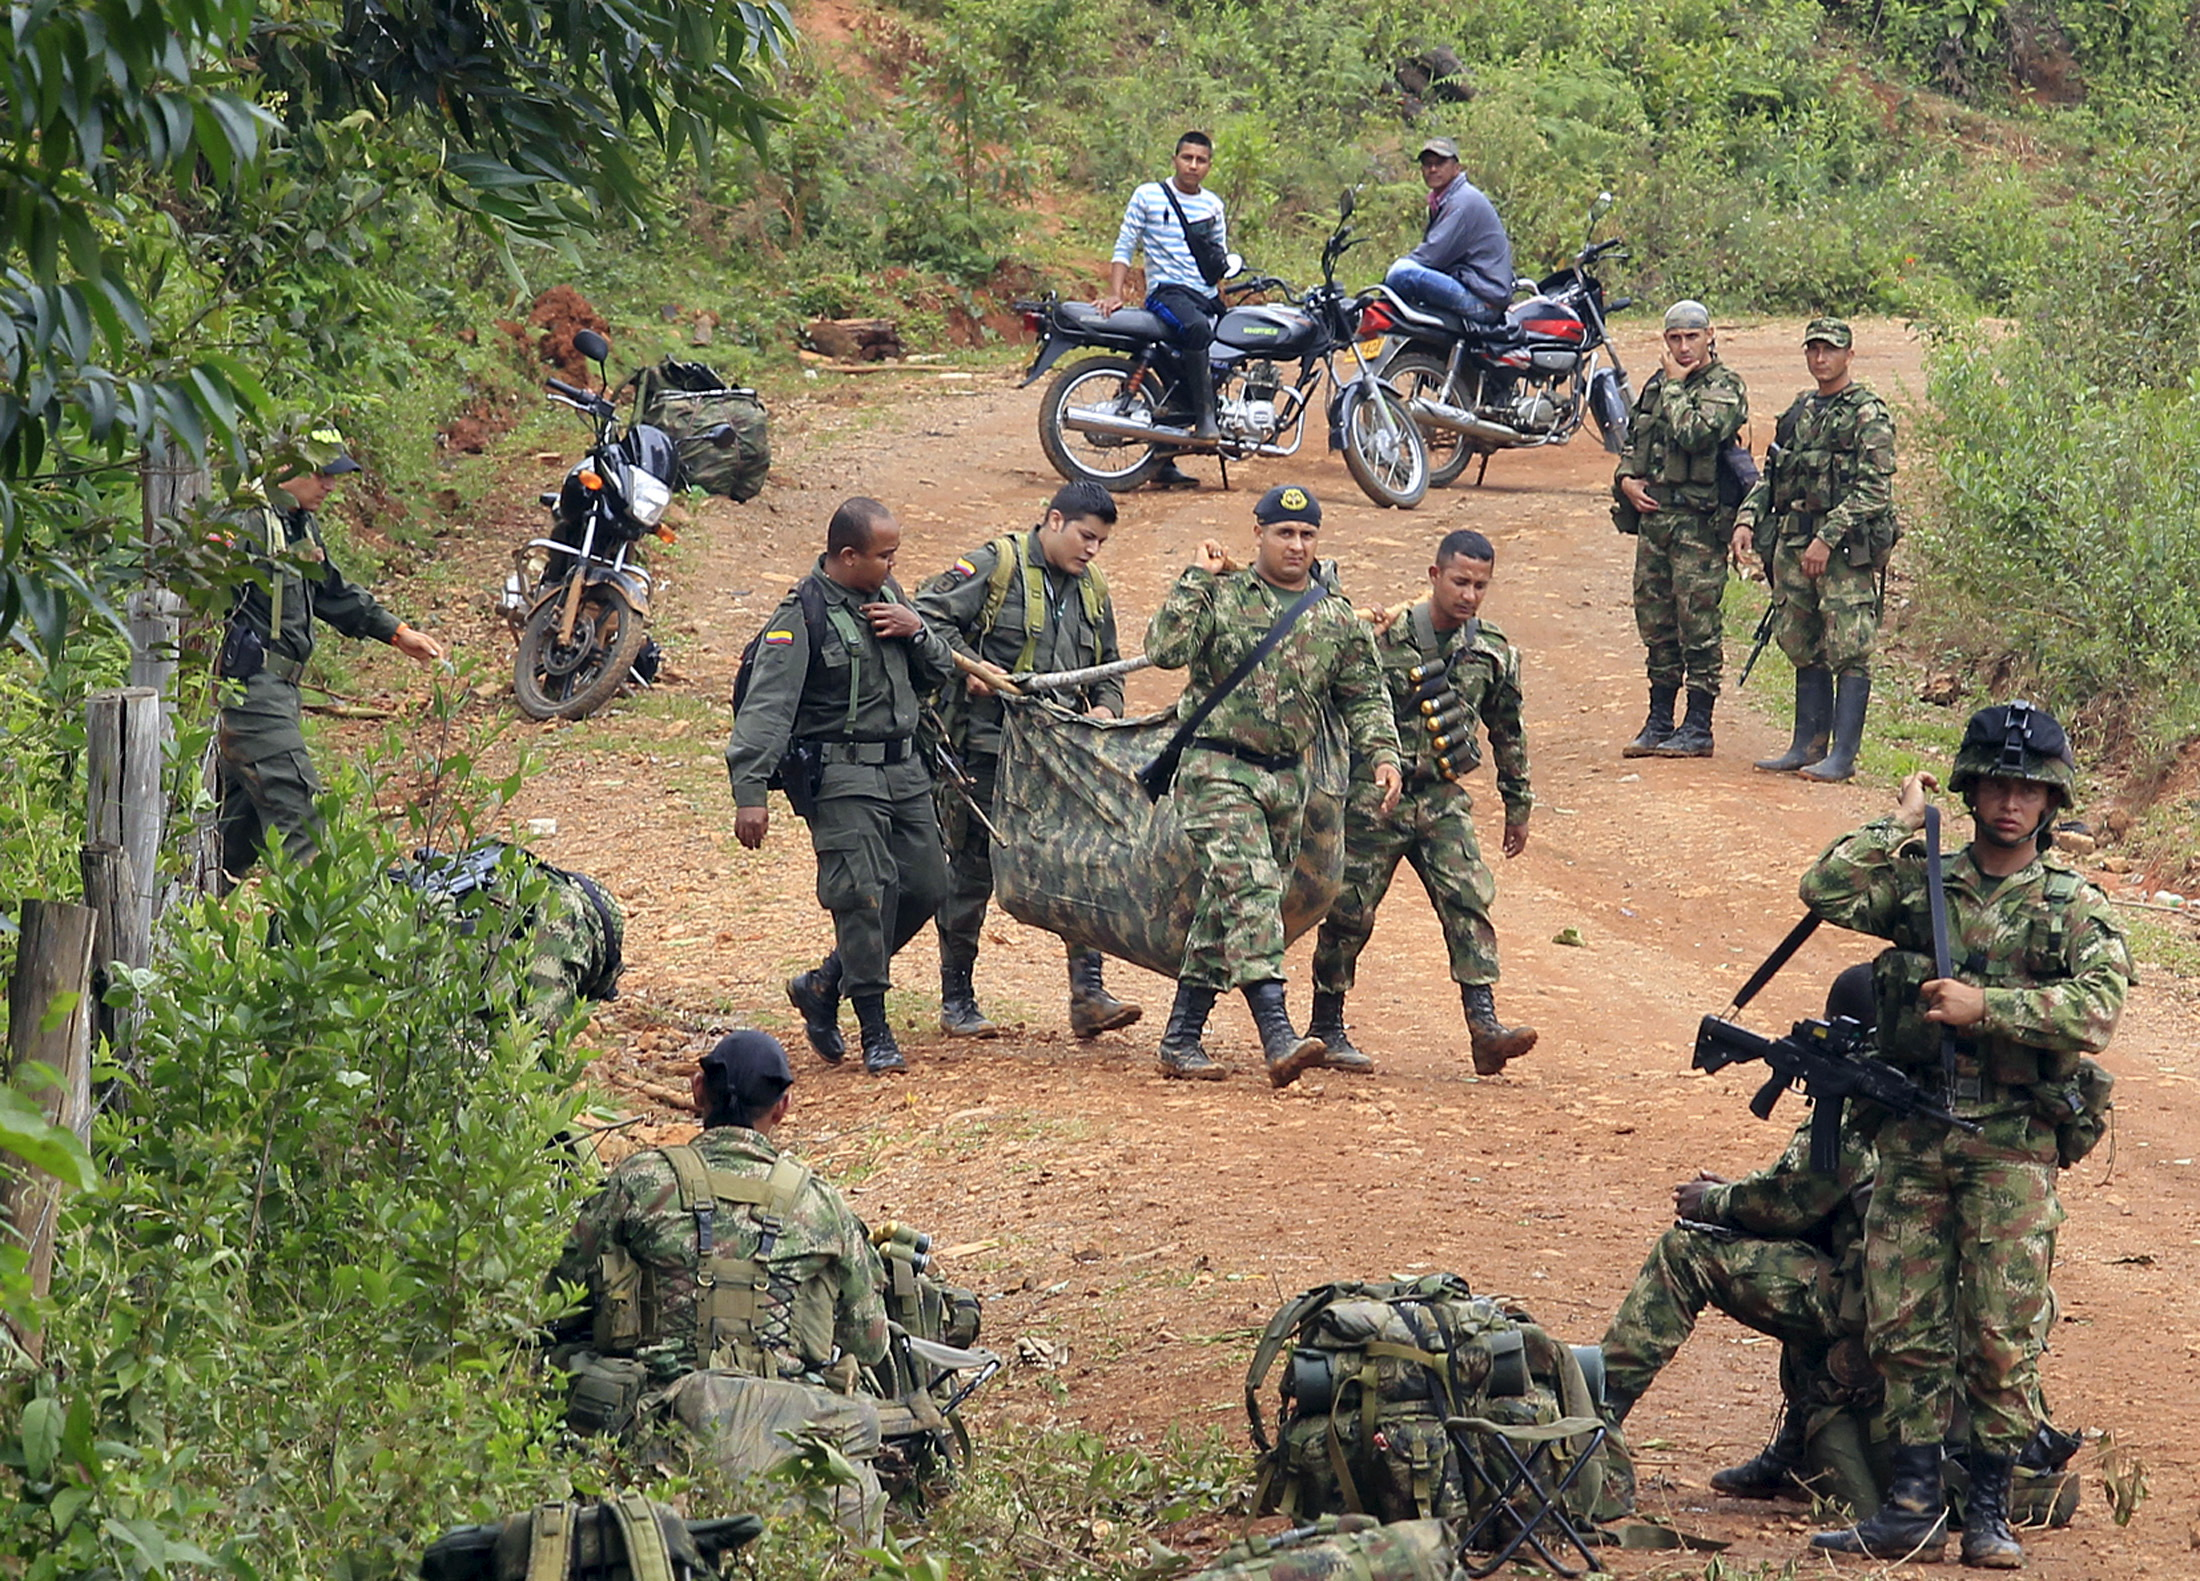 colombia guerrilla and political conflicts essay Colombian conflict executive summary: political violence had been a very significant part of colombian history since the 1940's this violence escaladed in the 1960's due to the creation of many armed revolutionary groups called guerrillas.